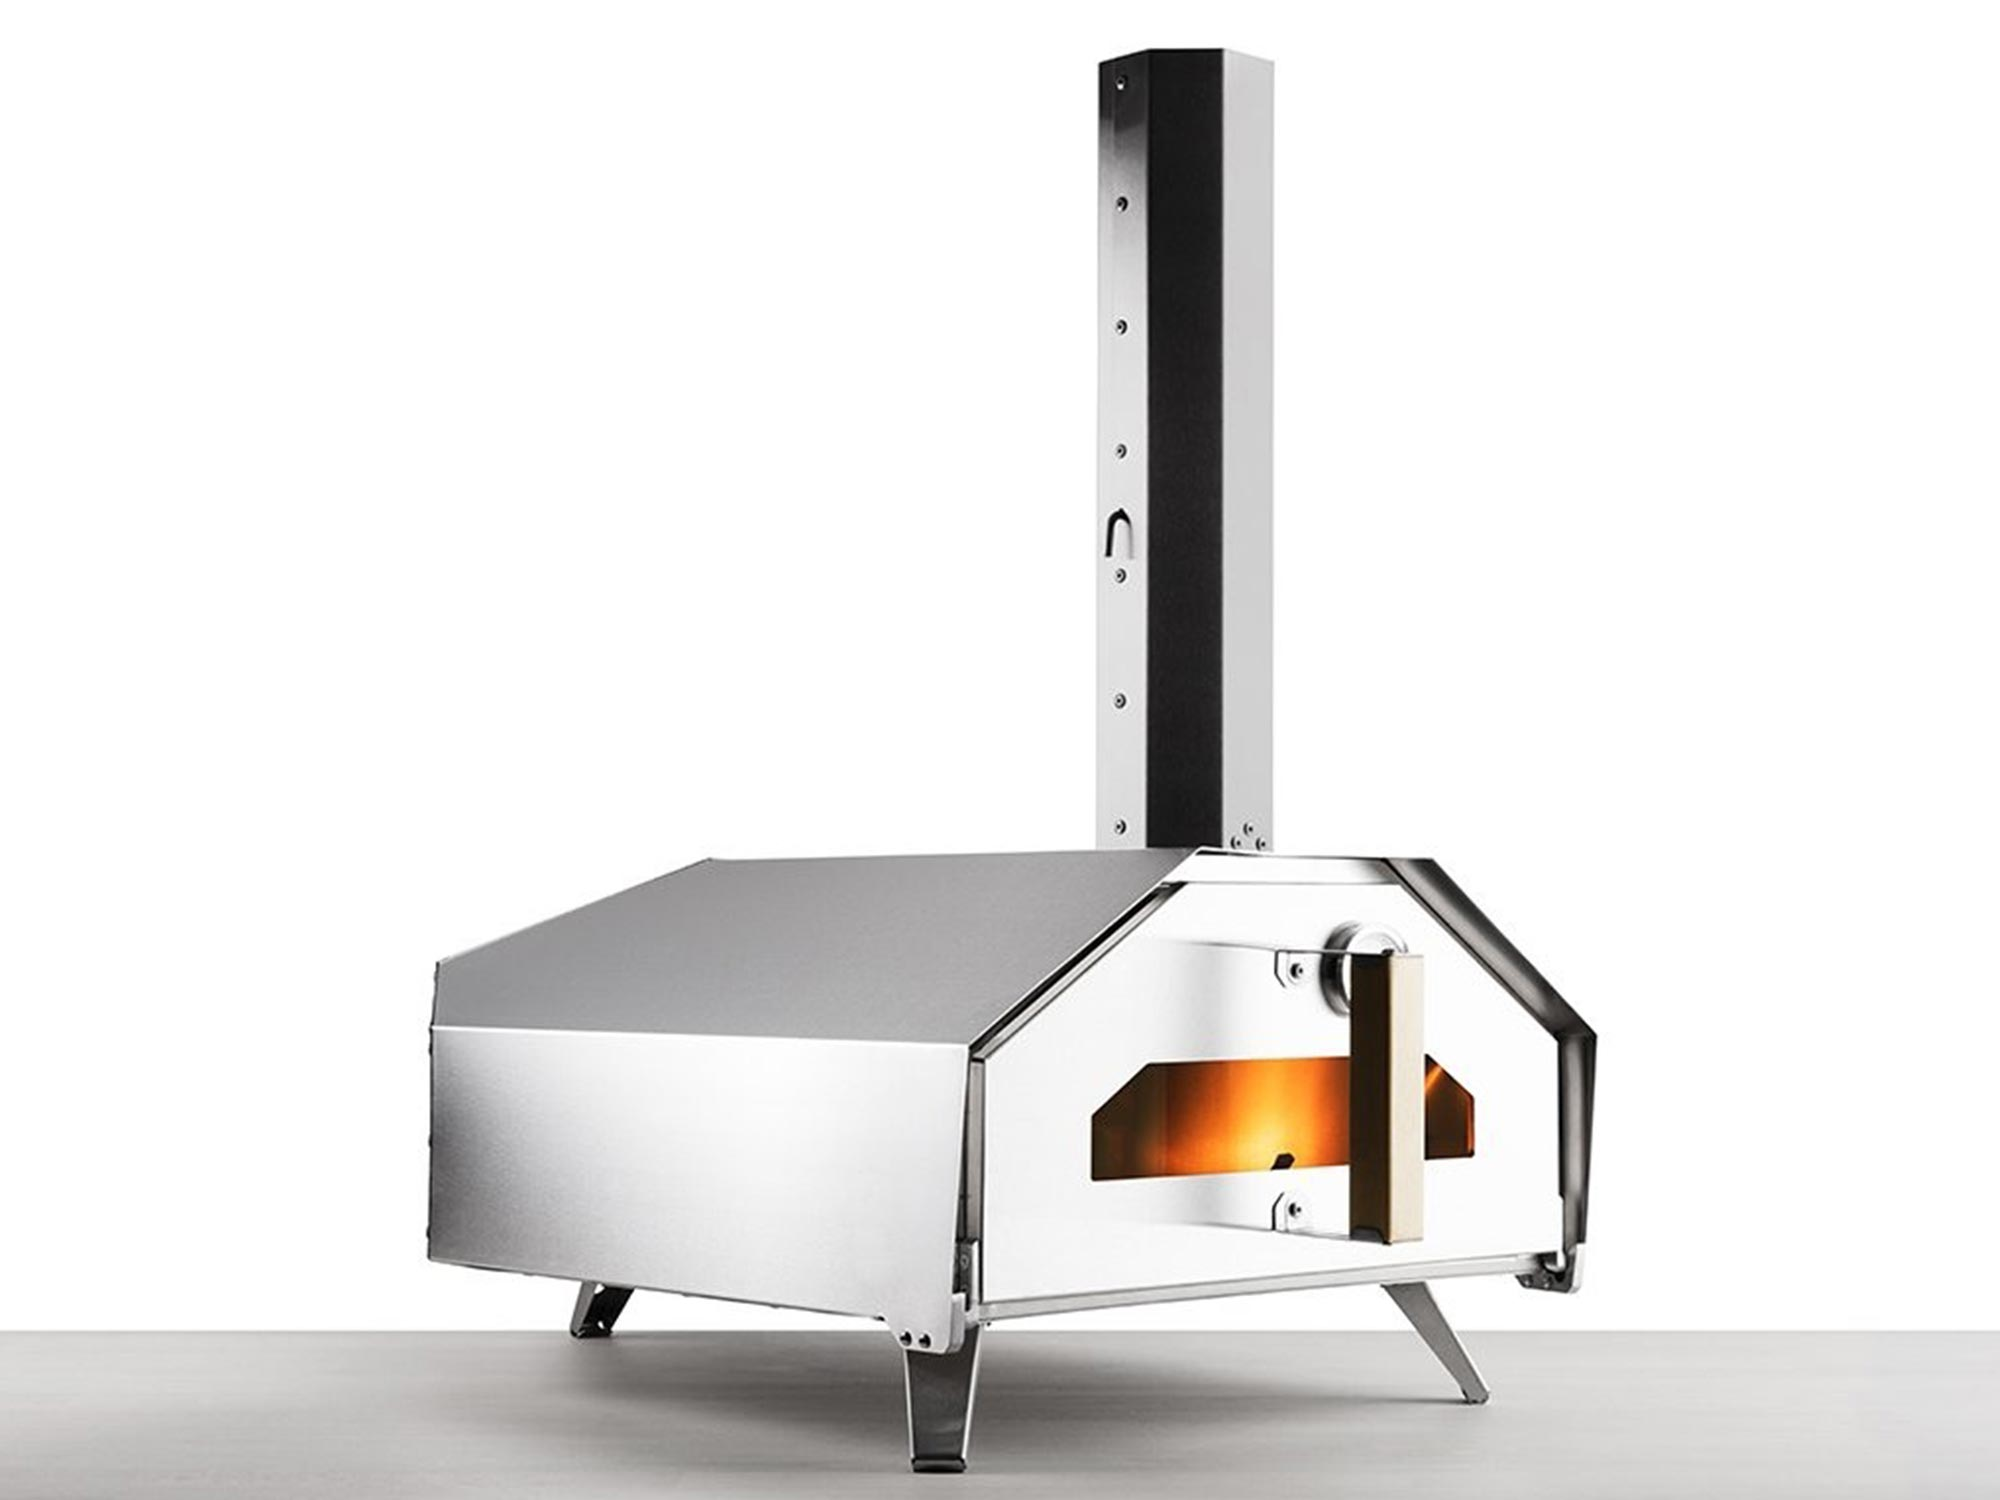 BC Home Leisure Uuni Pro Oven